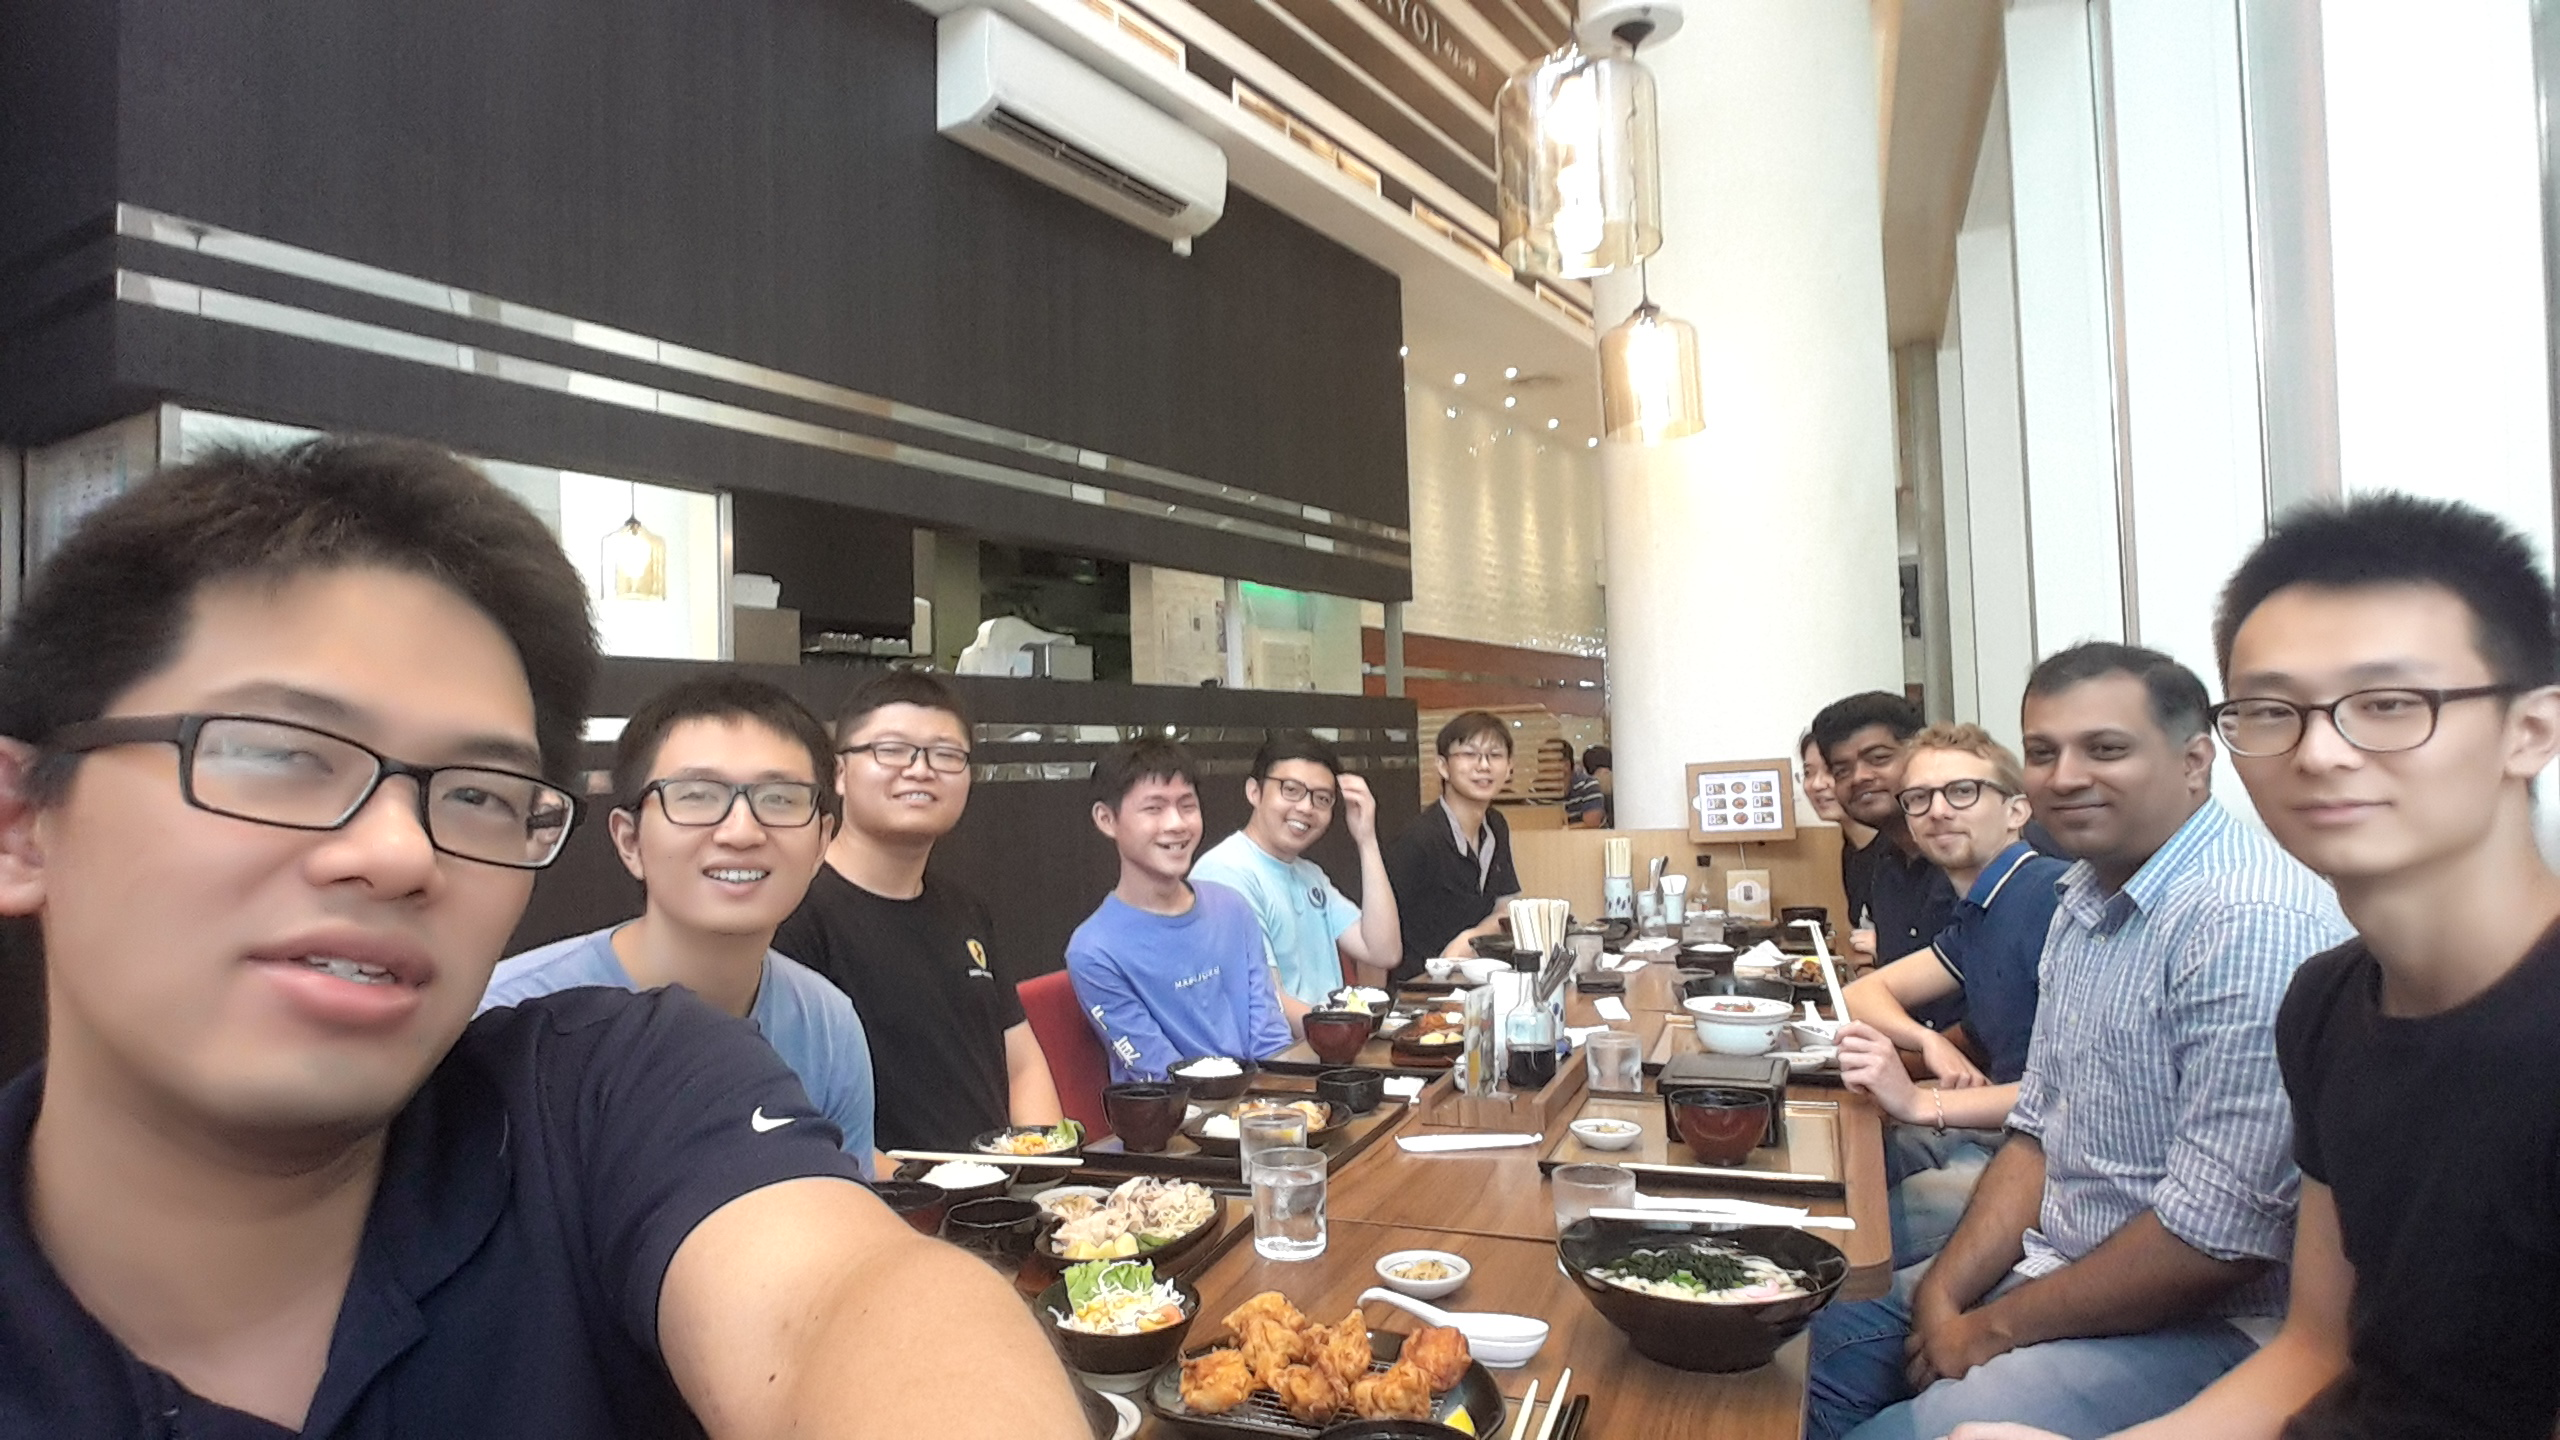 Group lunch. Jul 2018.